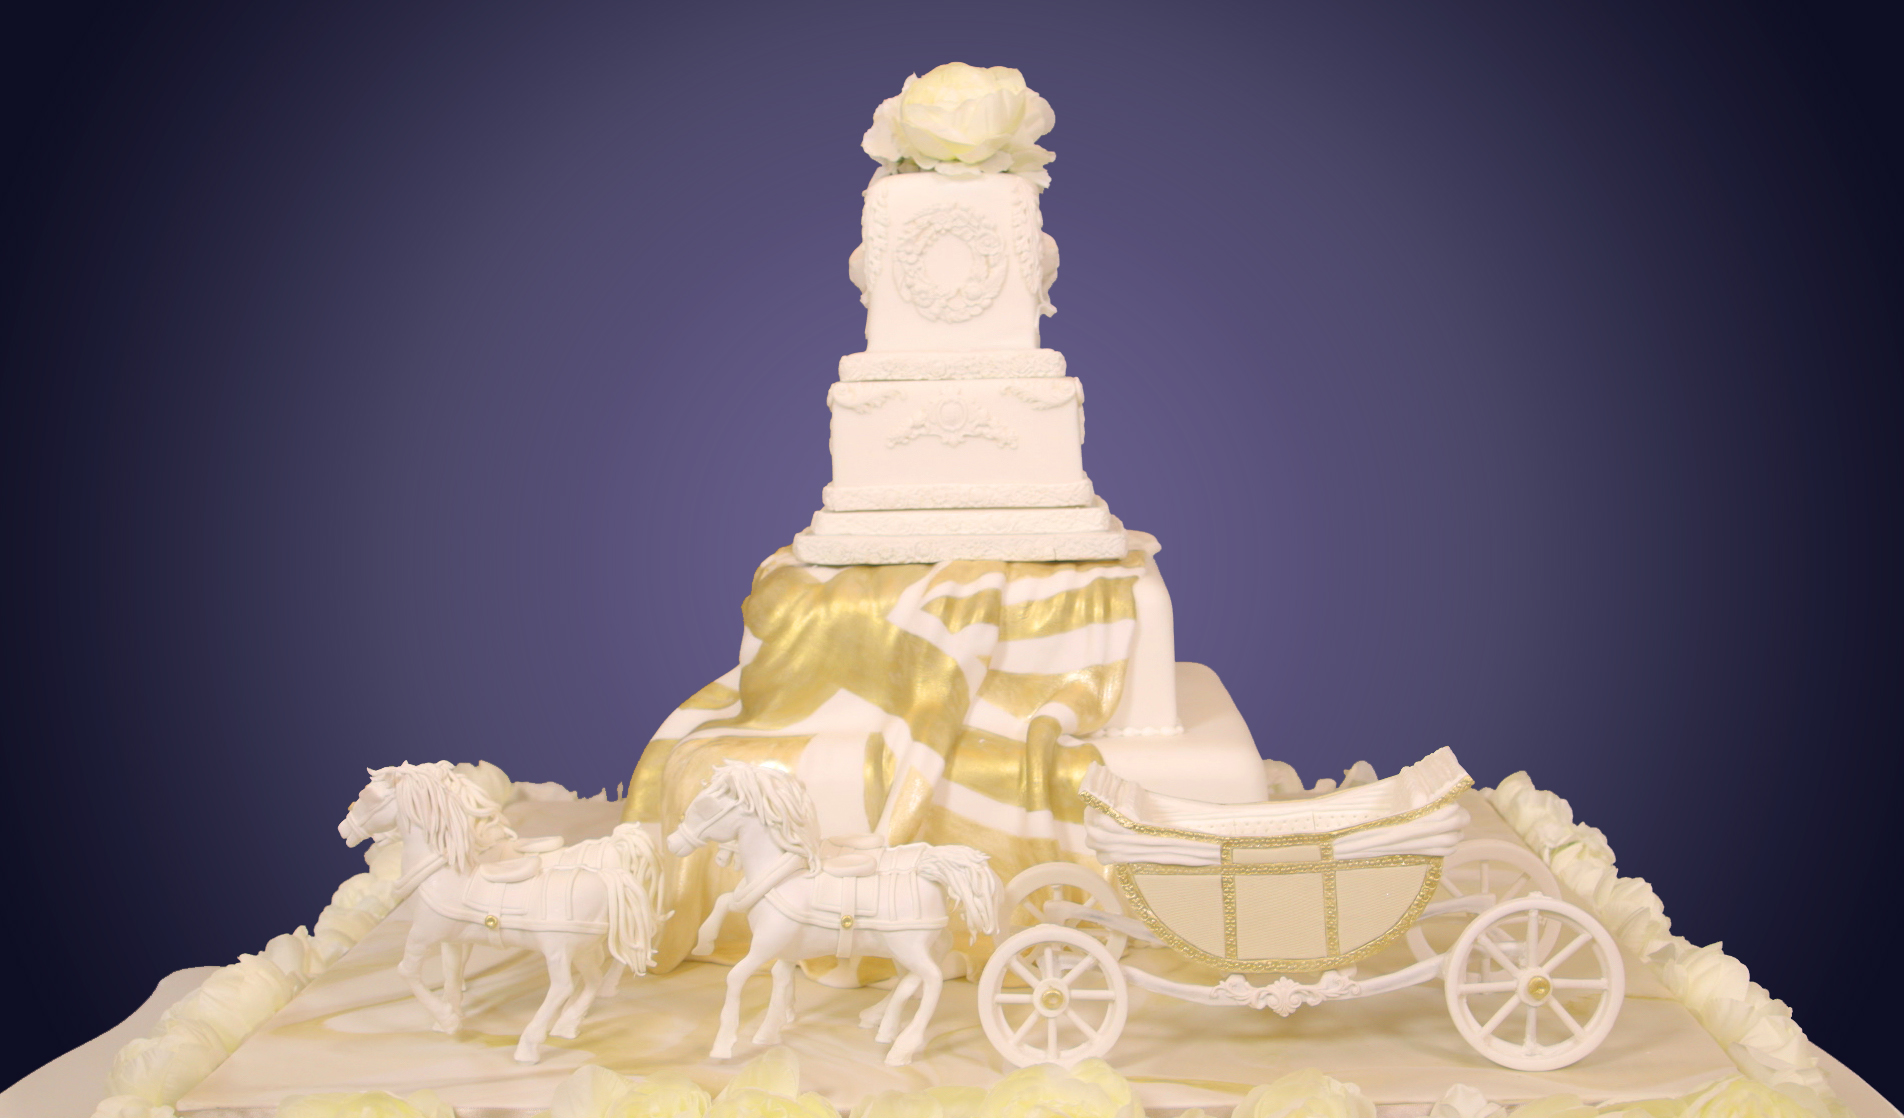 Royal Wedding Cake Special A Carriage For Harry And Meghan